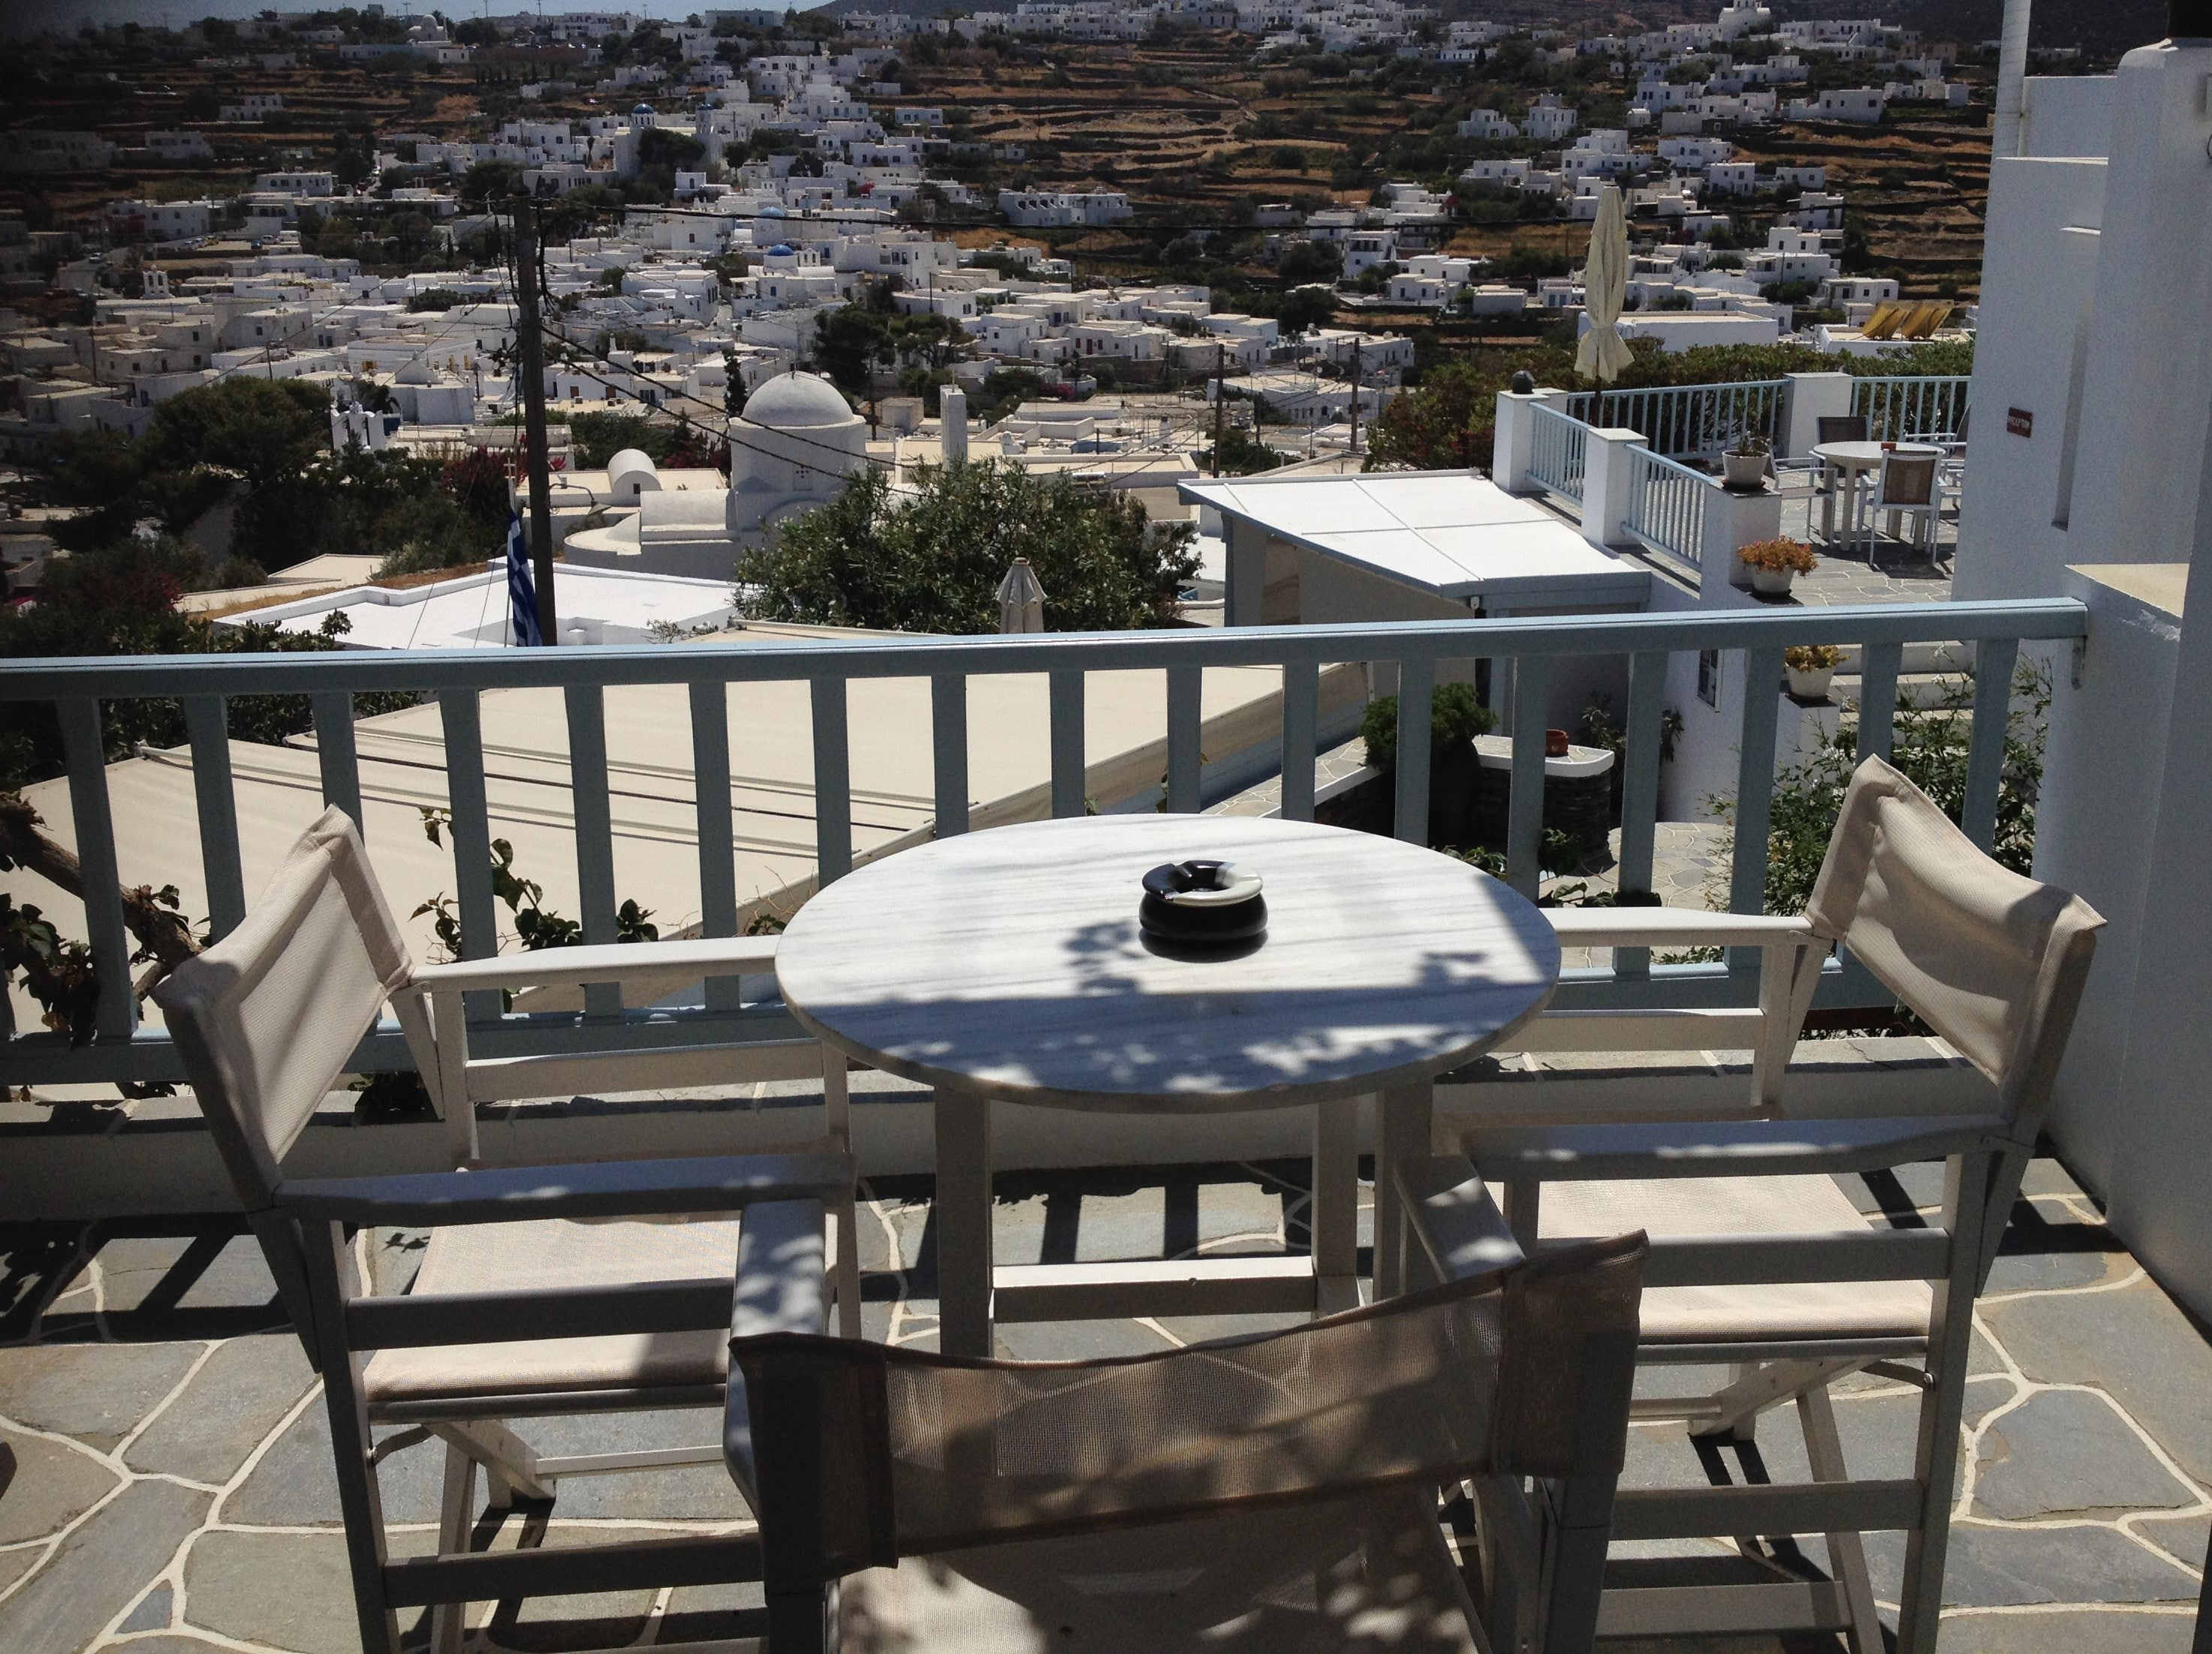 Sifnos Island - Sifnos is Tom Hanks' favorite - Artemonas village